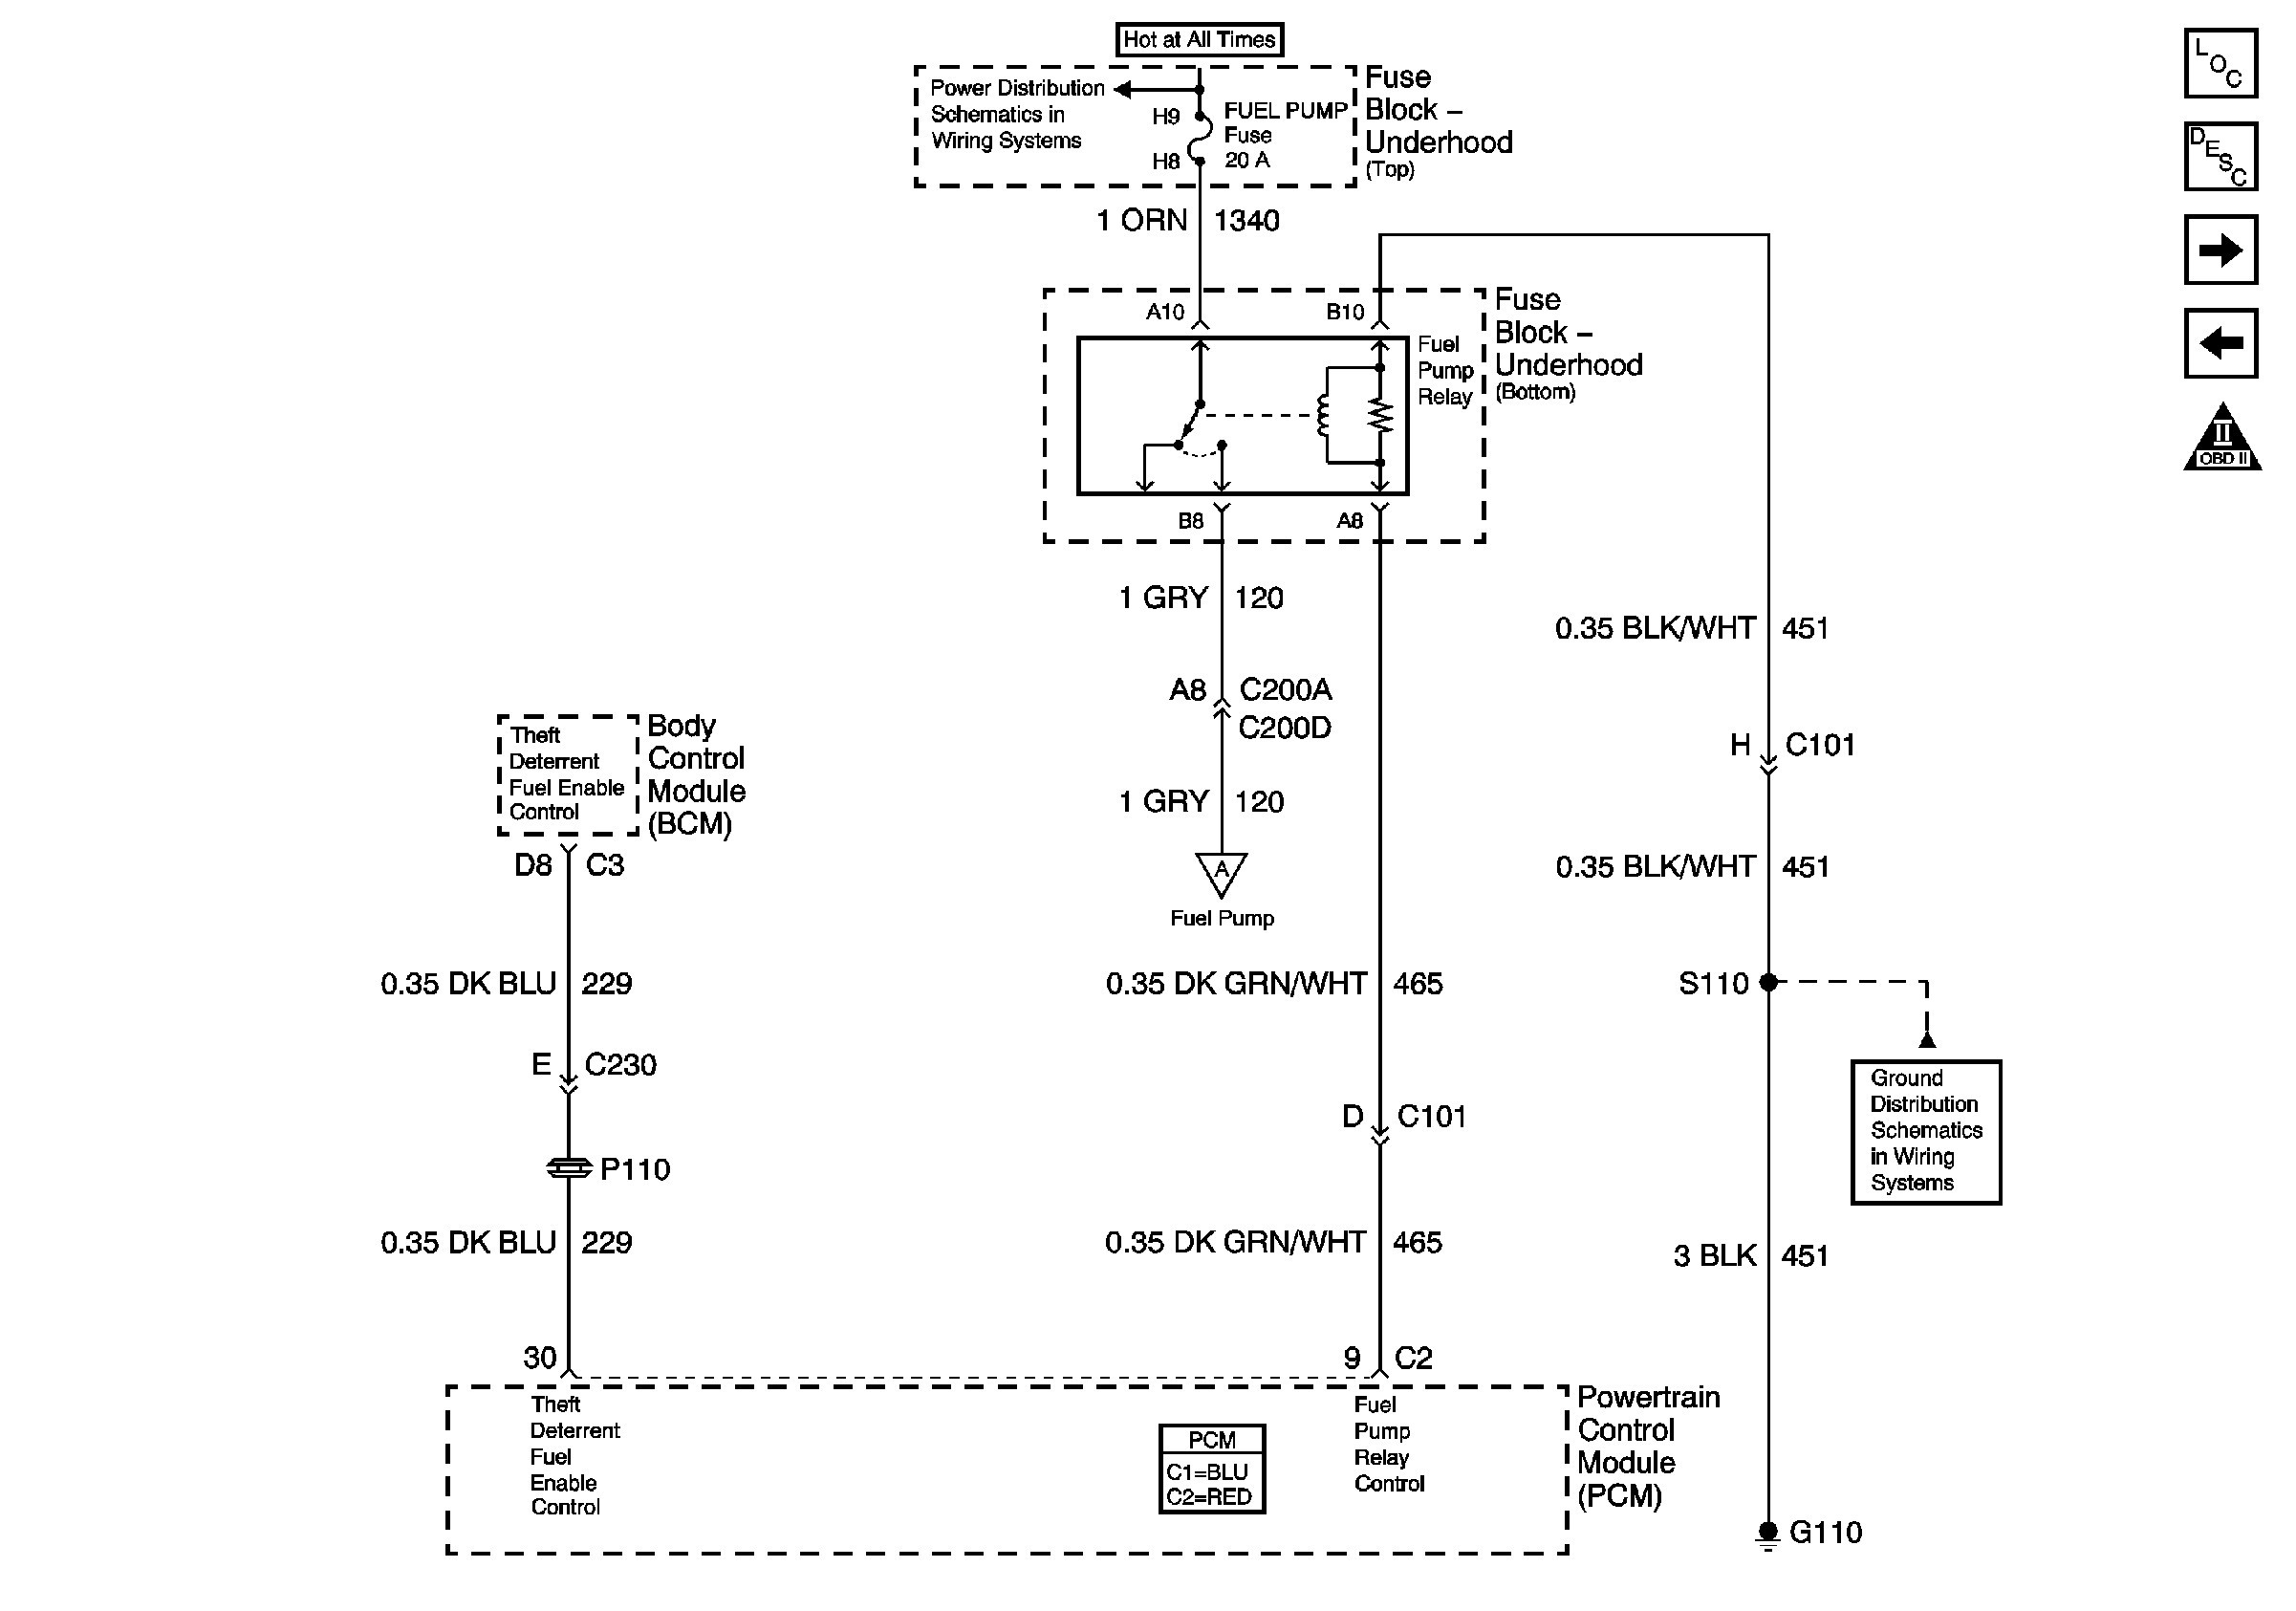 CF00AAB Stereo Wiring Diagram Vr Commodore | Wiring Resources on pt cruiser spark plug diagram, fuel pump timer, racing fuel cell diagram, fuel pump engine, chrysler pacifica fuel pump diagram, fuel pump plumbing diagram, fuel pump honda, fuel pump ecu, fuel pump carburetor, fuel pump battery, fuel pump fuse diagram, fuel pump dimensions, fuel pump disassembly, fuel pump cabinet, circuit diagram, 1998 buick lesabre fuel pump diagram, fuel pump tires, fuel pump installation, gm fuel pump connector diagram, fuel sender wiring-diagram,